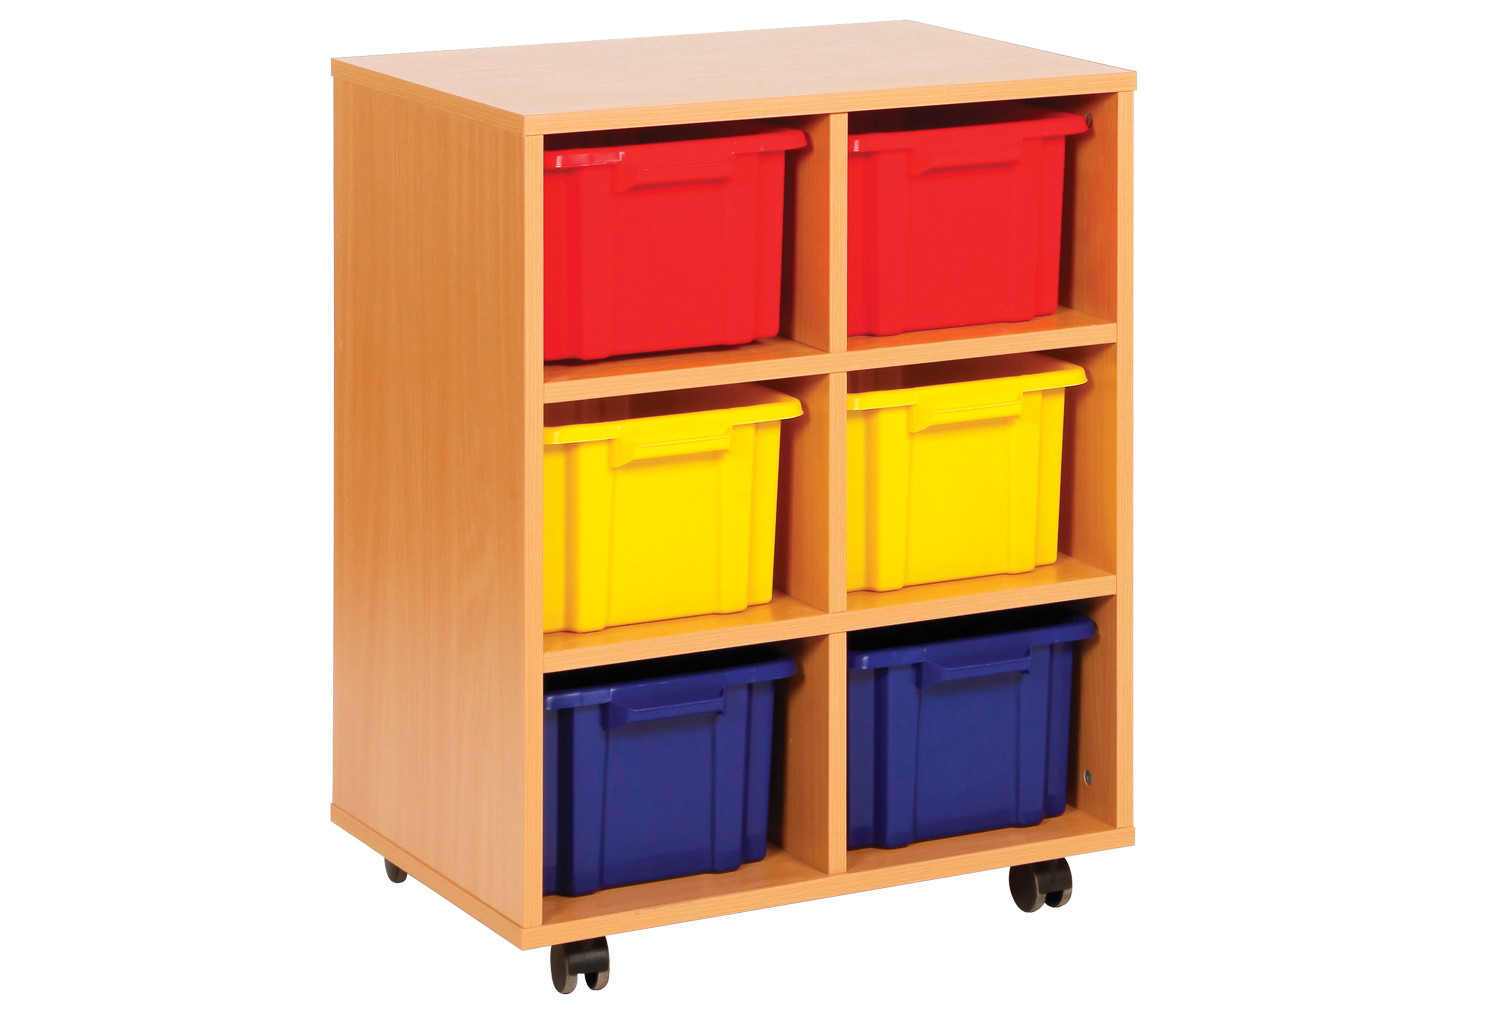 Budget 6 Tray Storage Unit